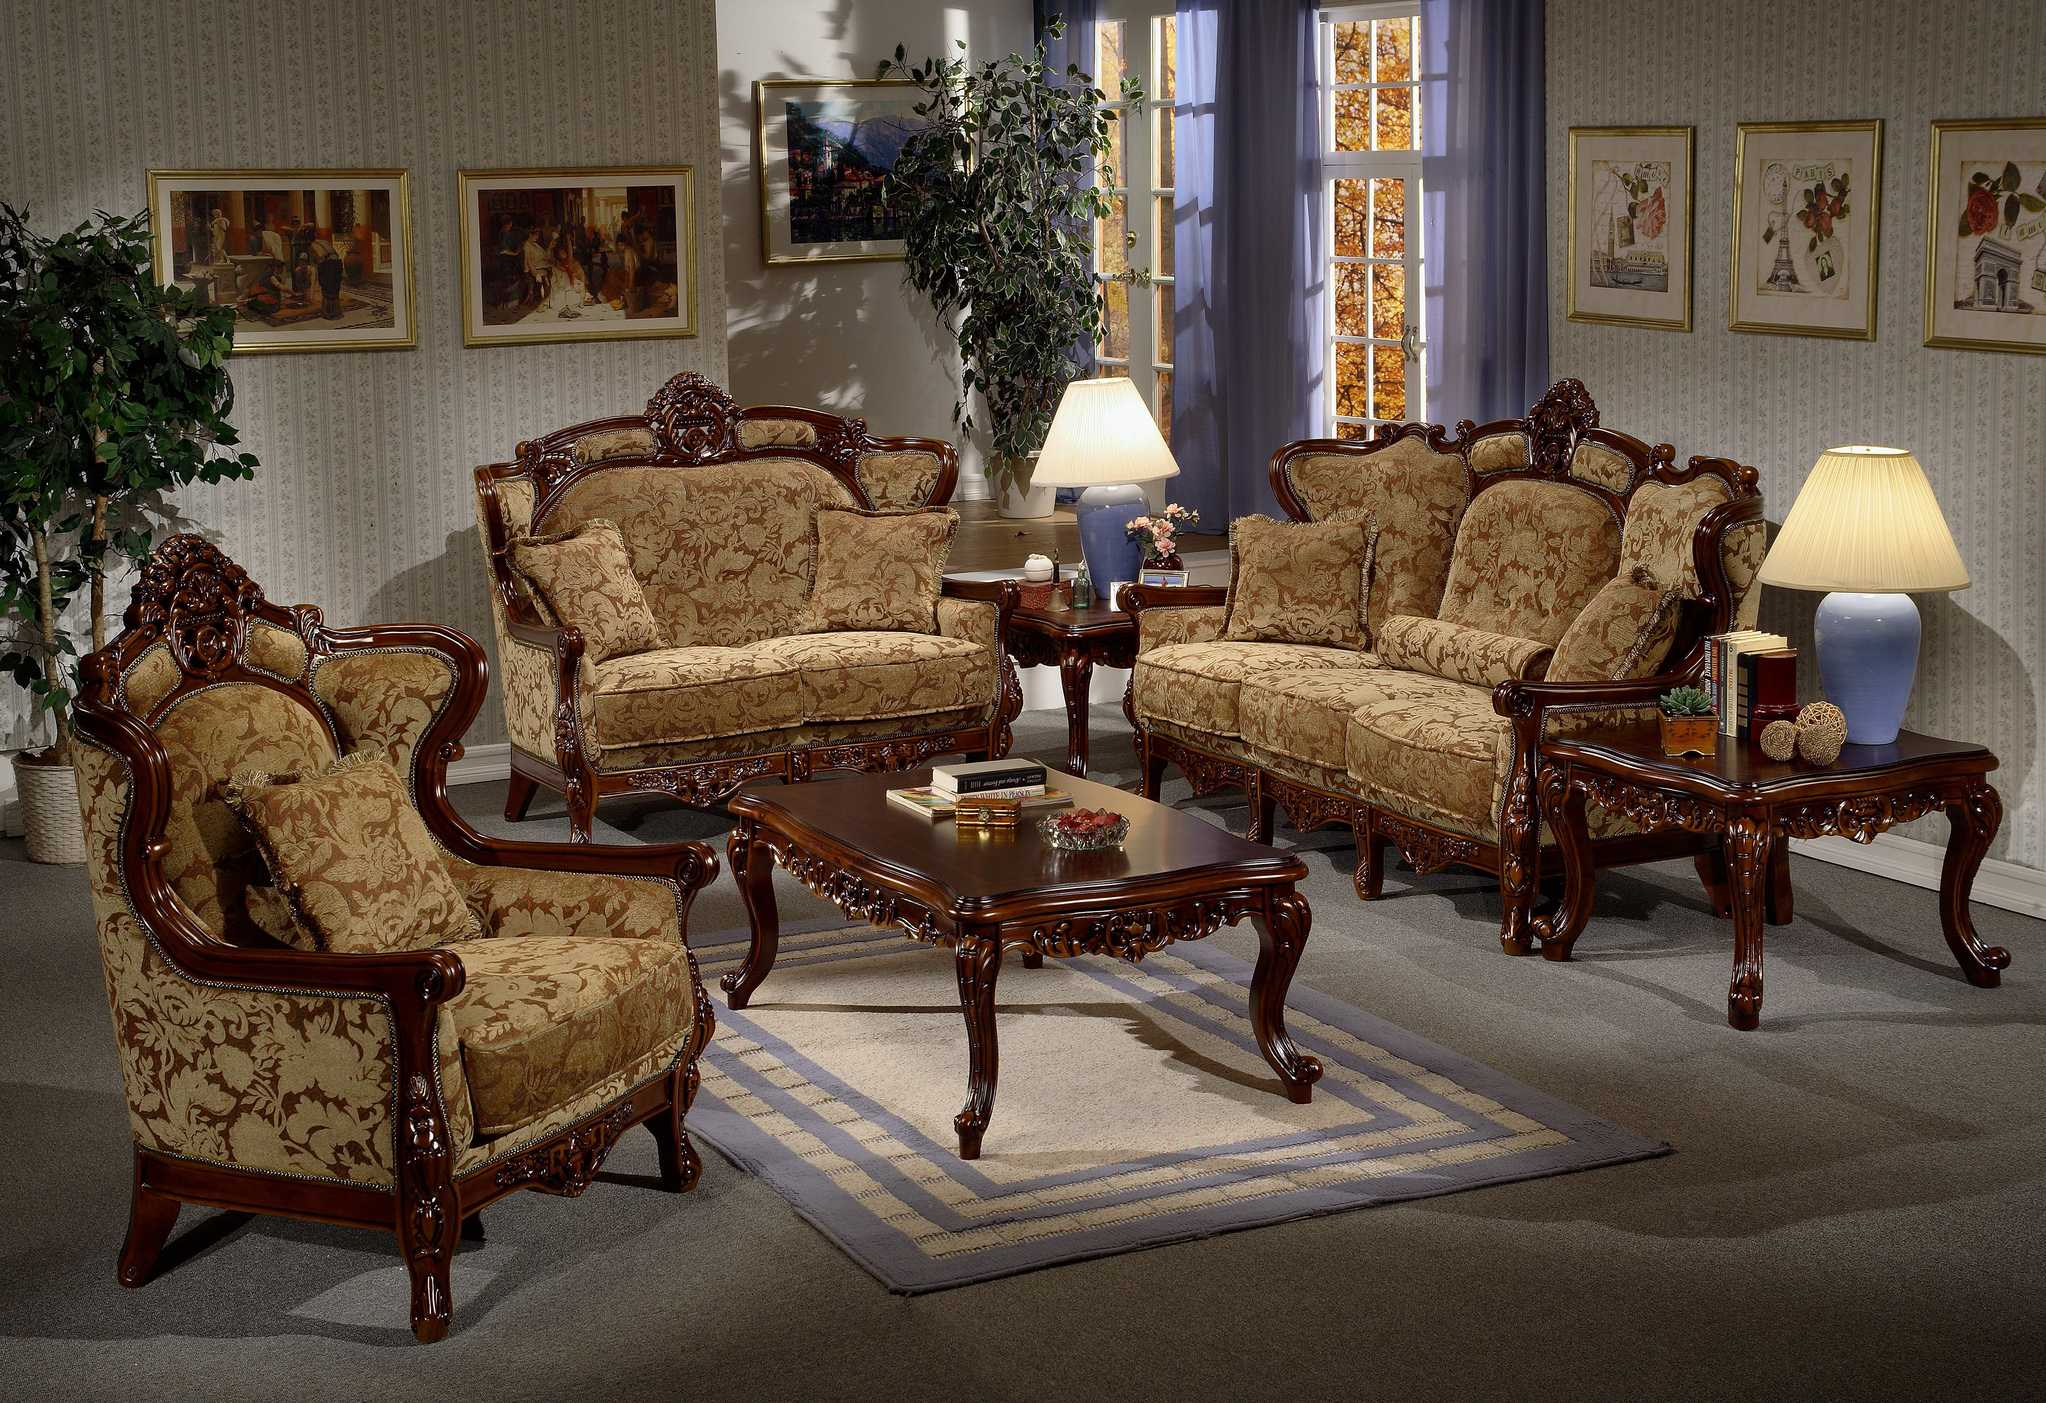 Italian Living Room Furniture L Shaped Living Room Home Decor Ideas pertaining to Italian Living Room Set